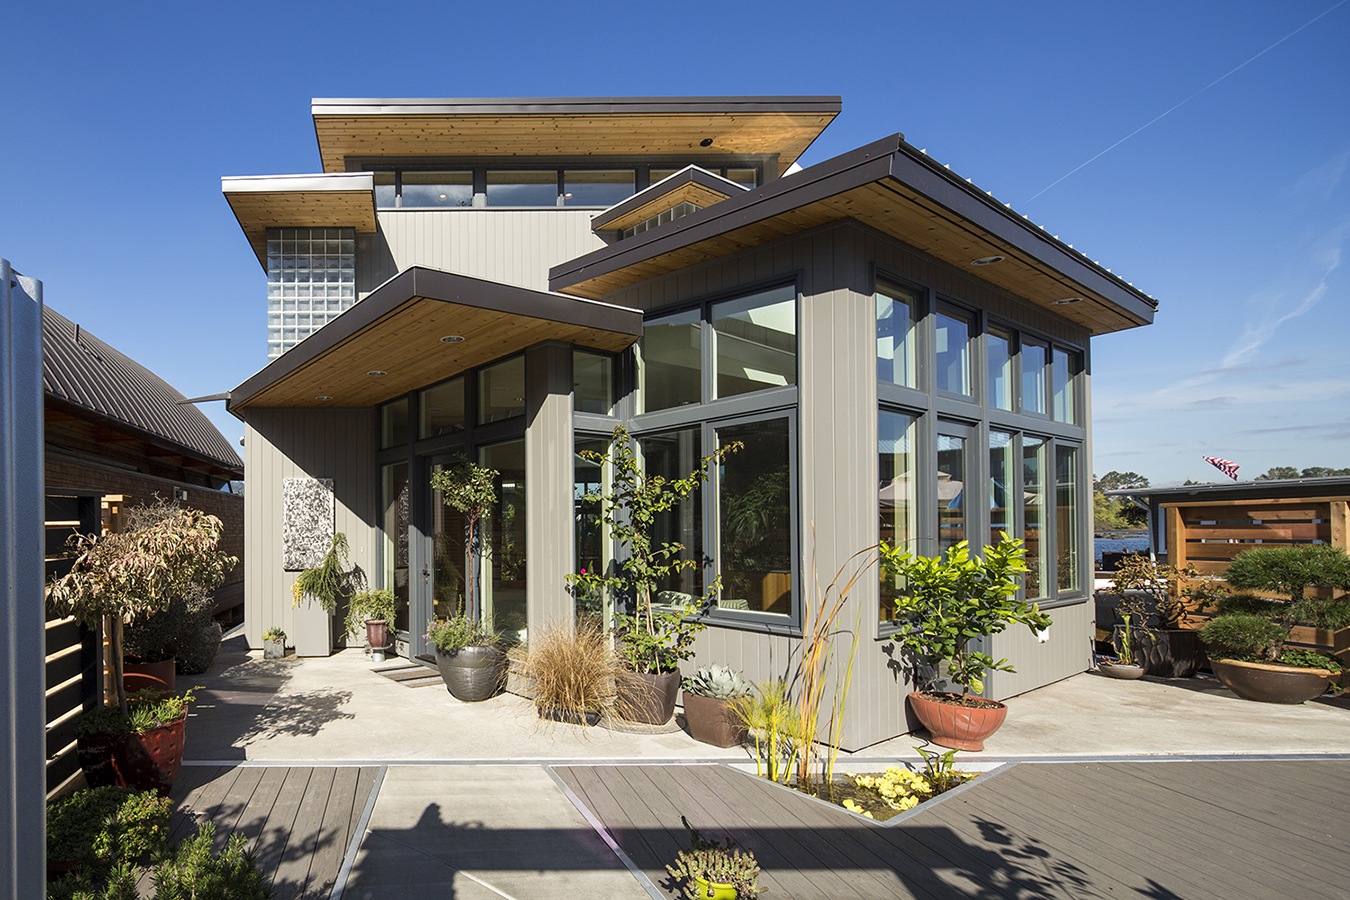 5th annual portland modern home tour features best in for Best architecture houses